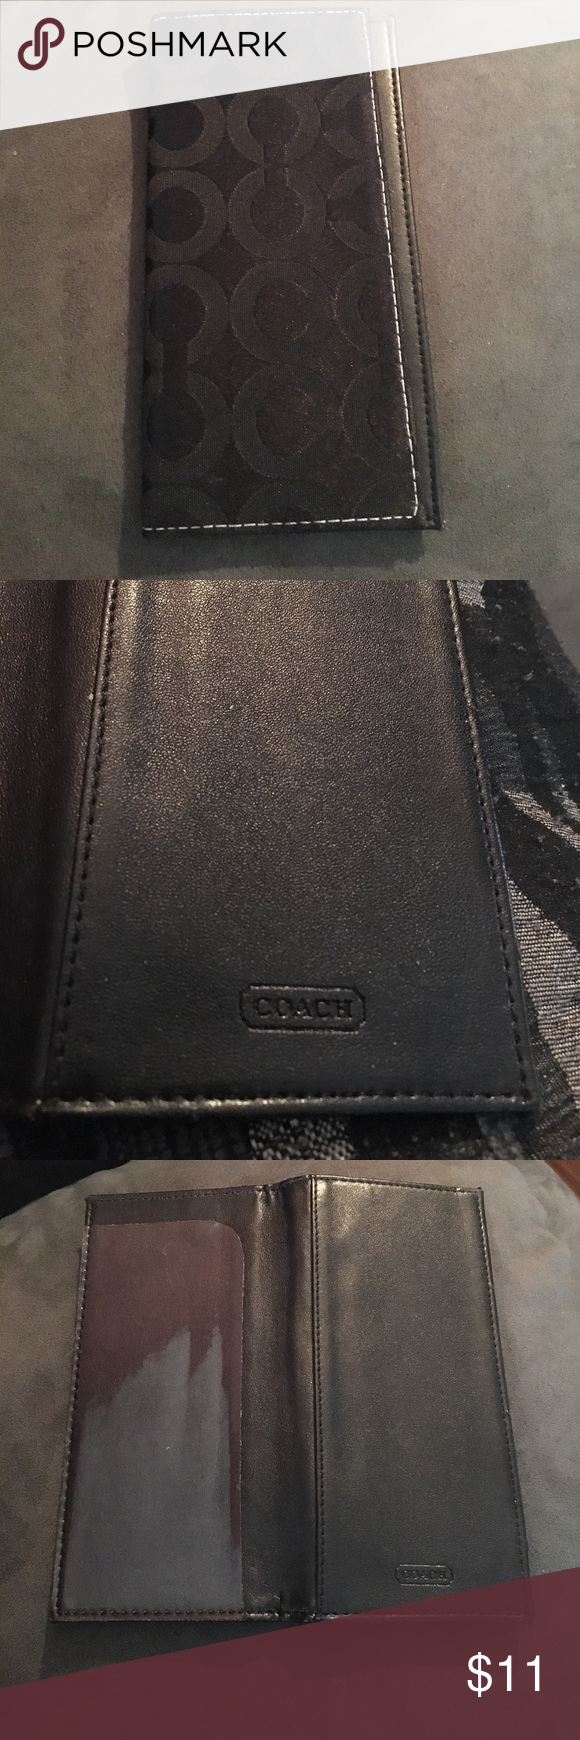 Coach Signature C's Checkbook Cover Great used condition.Nice upgrade for your checkbook and helps you find it in your purse or drawer. Bags Wallets